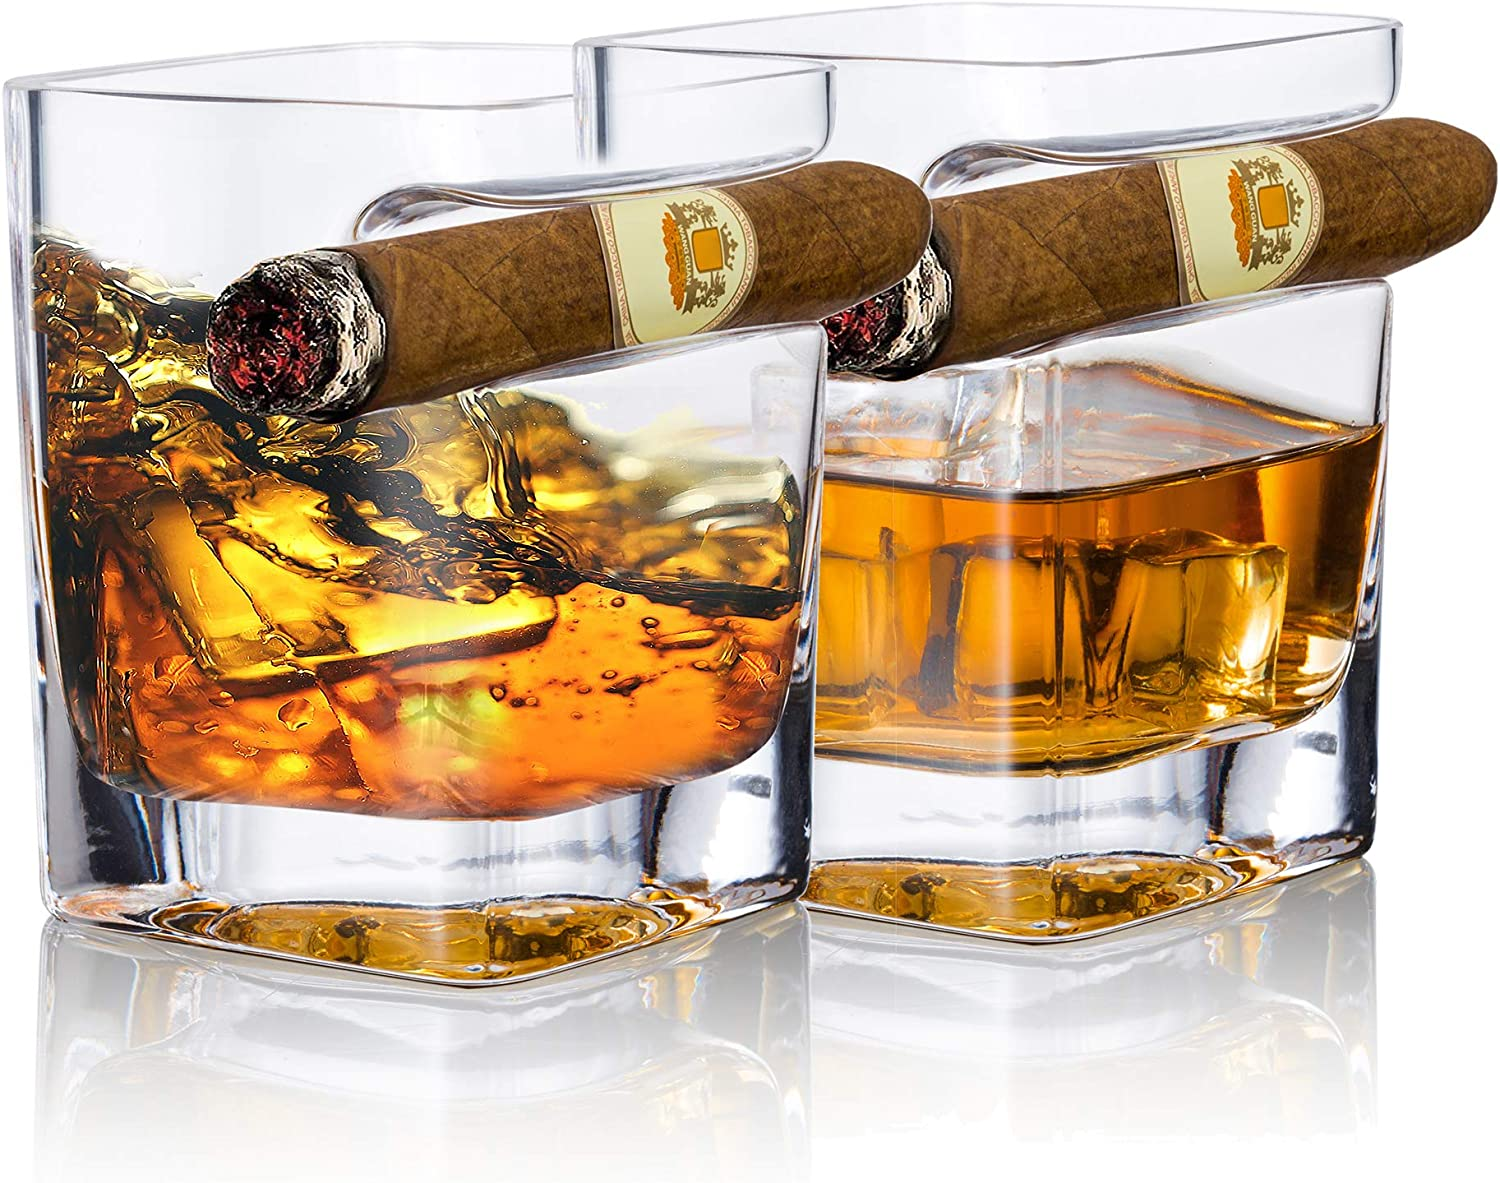 YouYah Cigar Whiskey Great interest Glasses with Holder-Set of 2 National products Ac